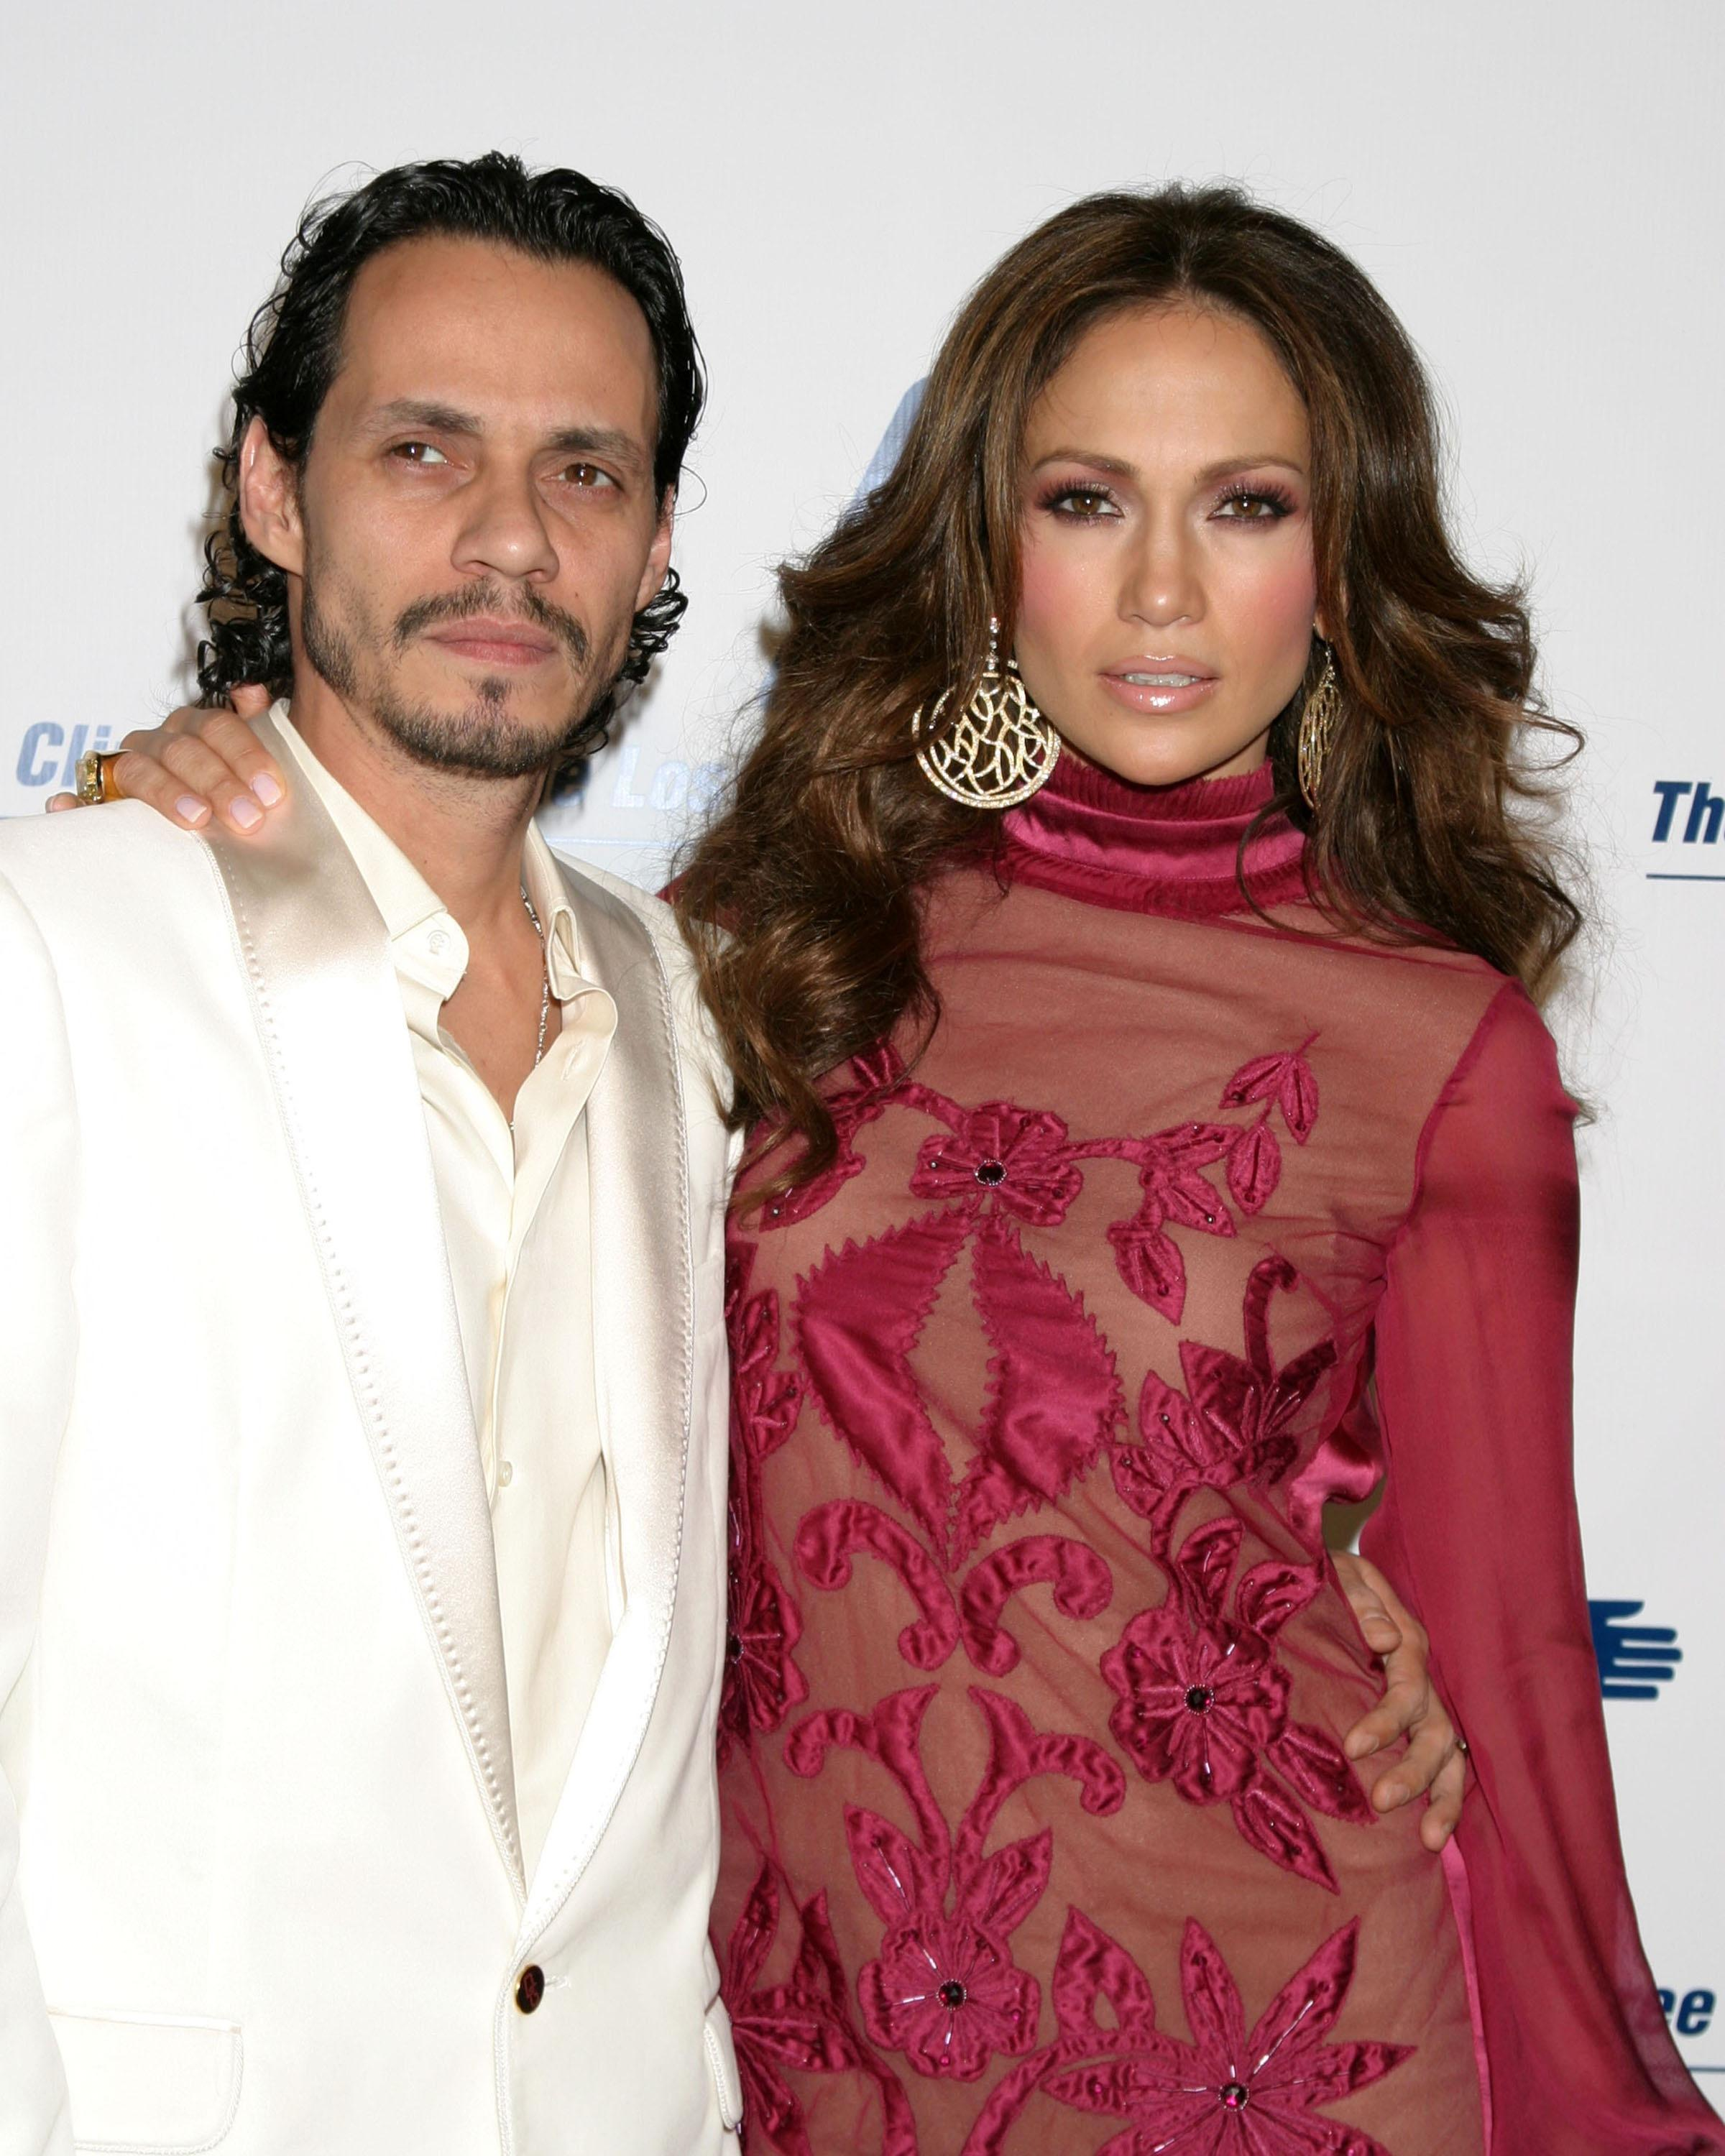 Max dating jlo